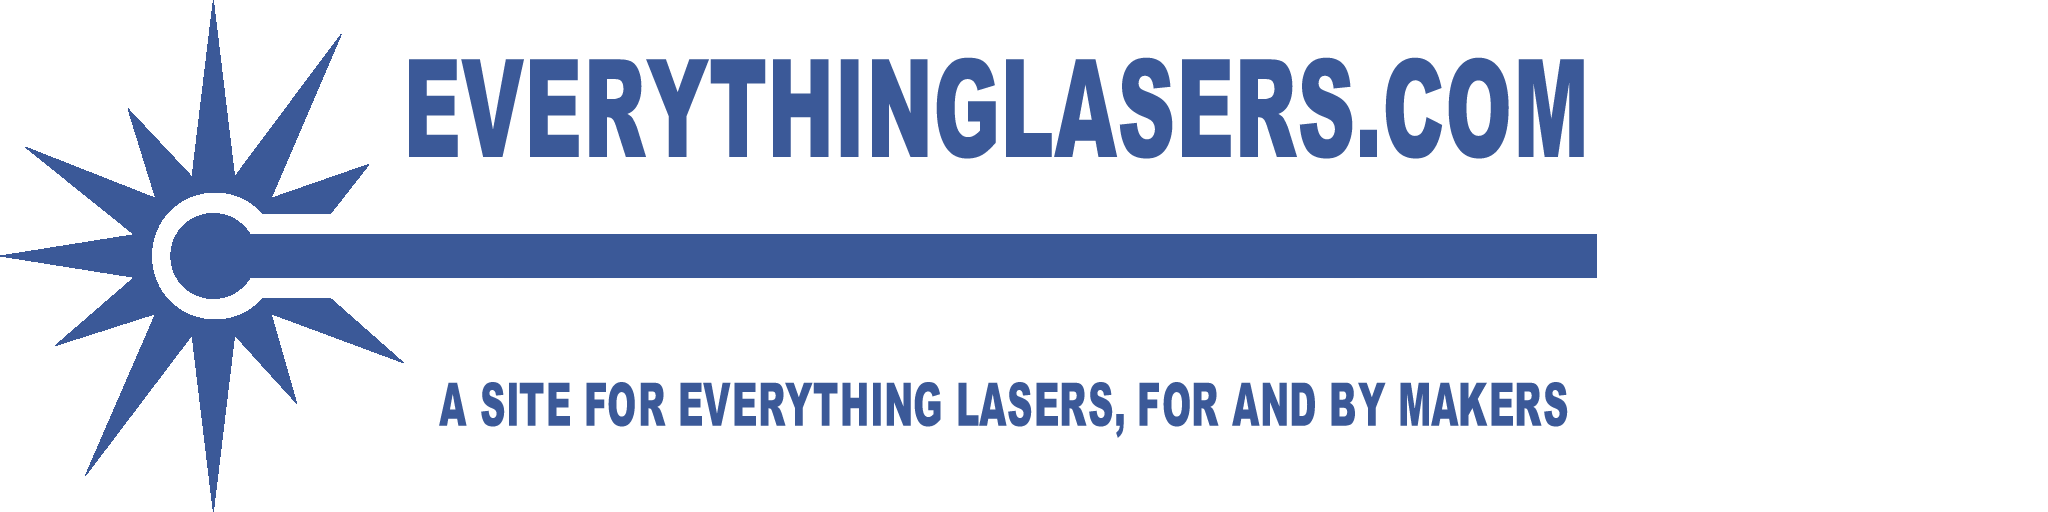 EverythingLasers